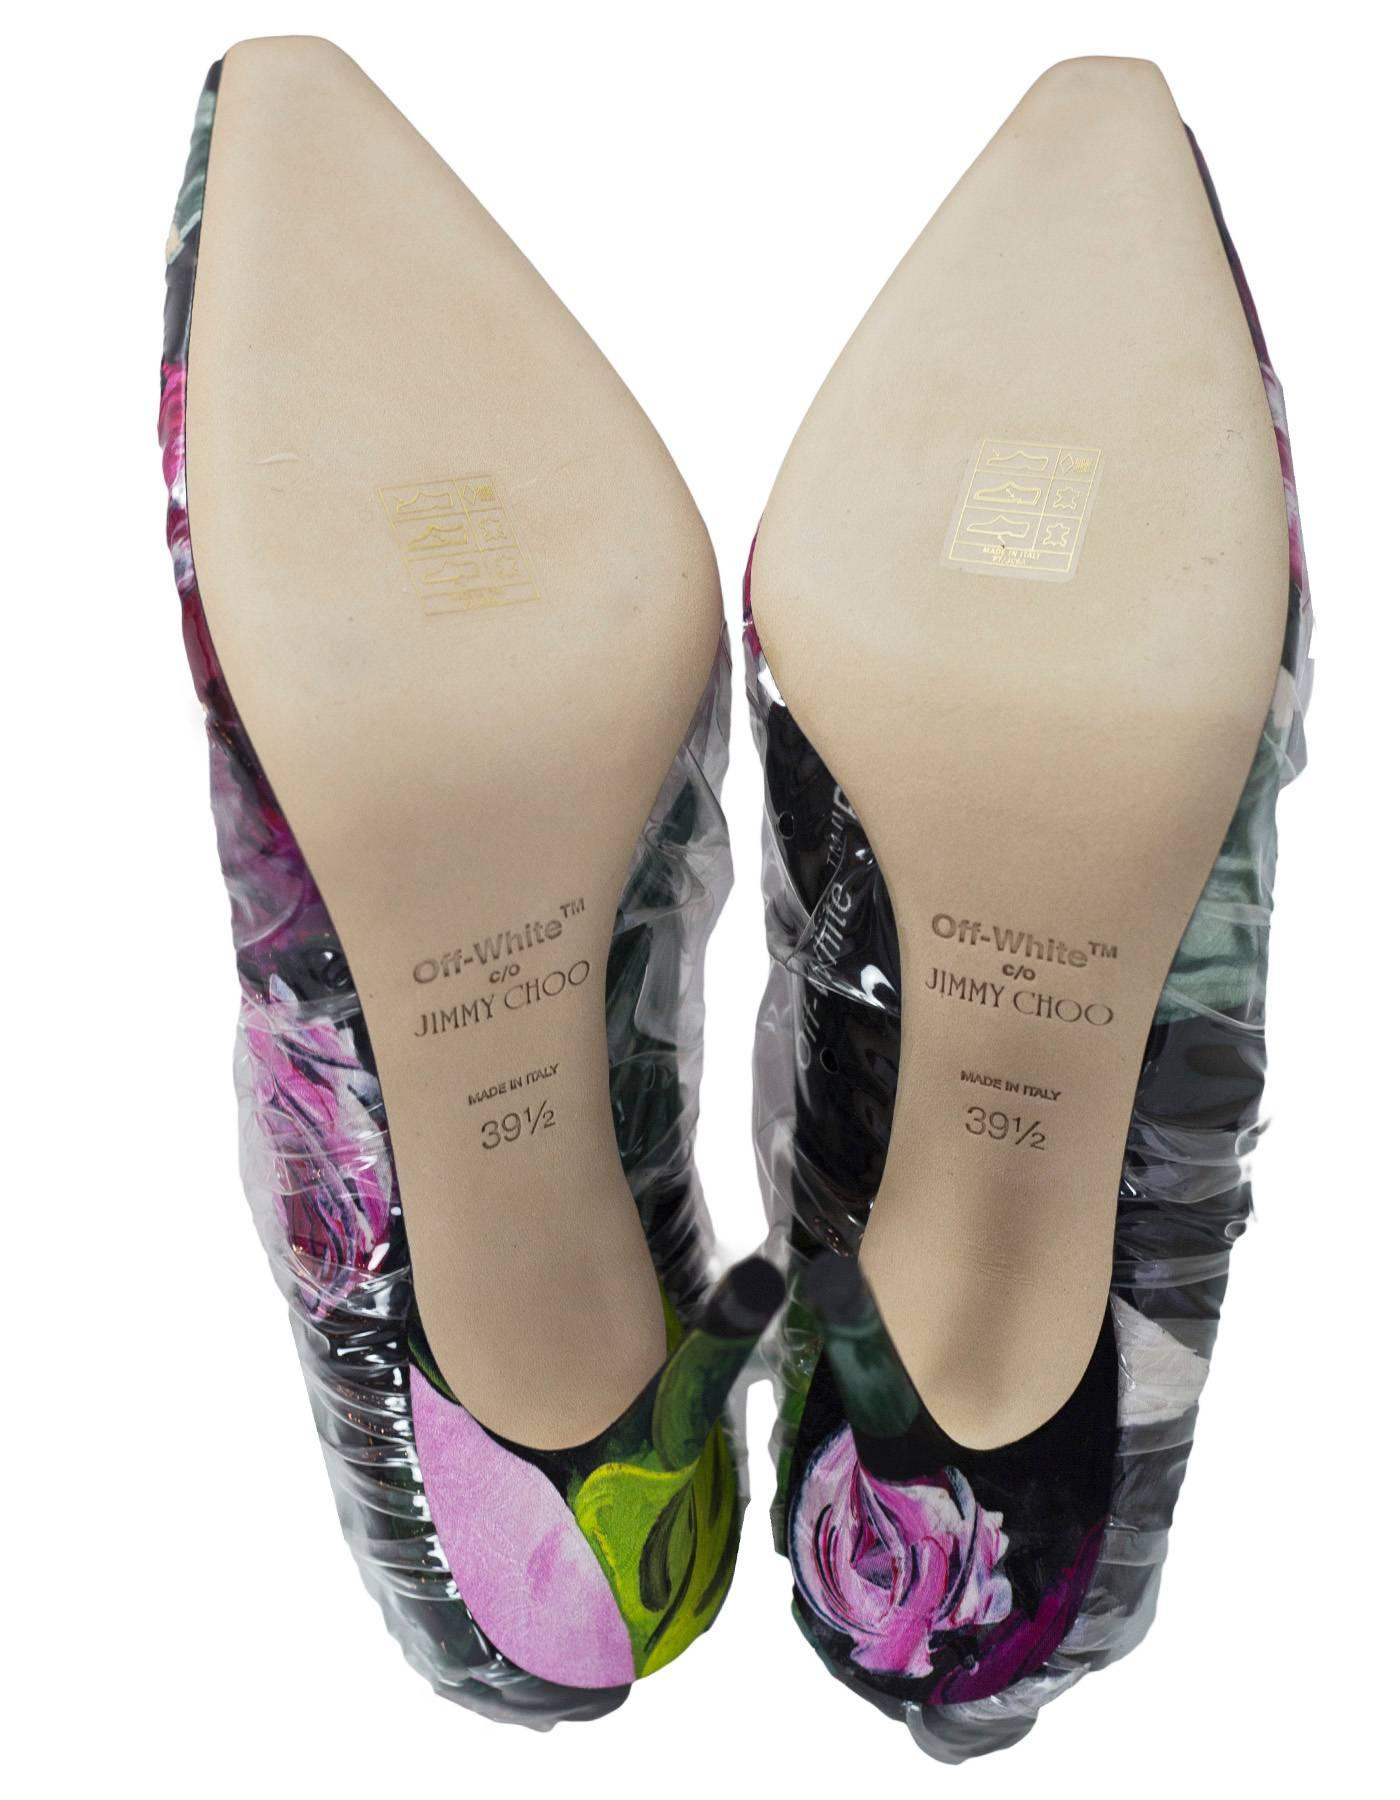 3f871027784 Off-White x Jimmy Choo Floral Printed Chisel Toe Anne 100 Pumps Sz 39.5 NIB  For Sale at 1stdibs